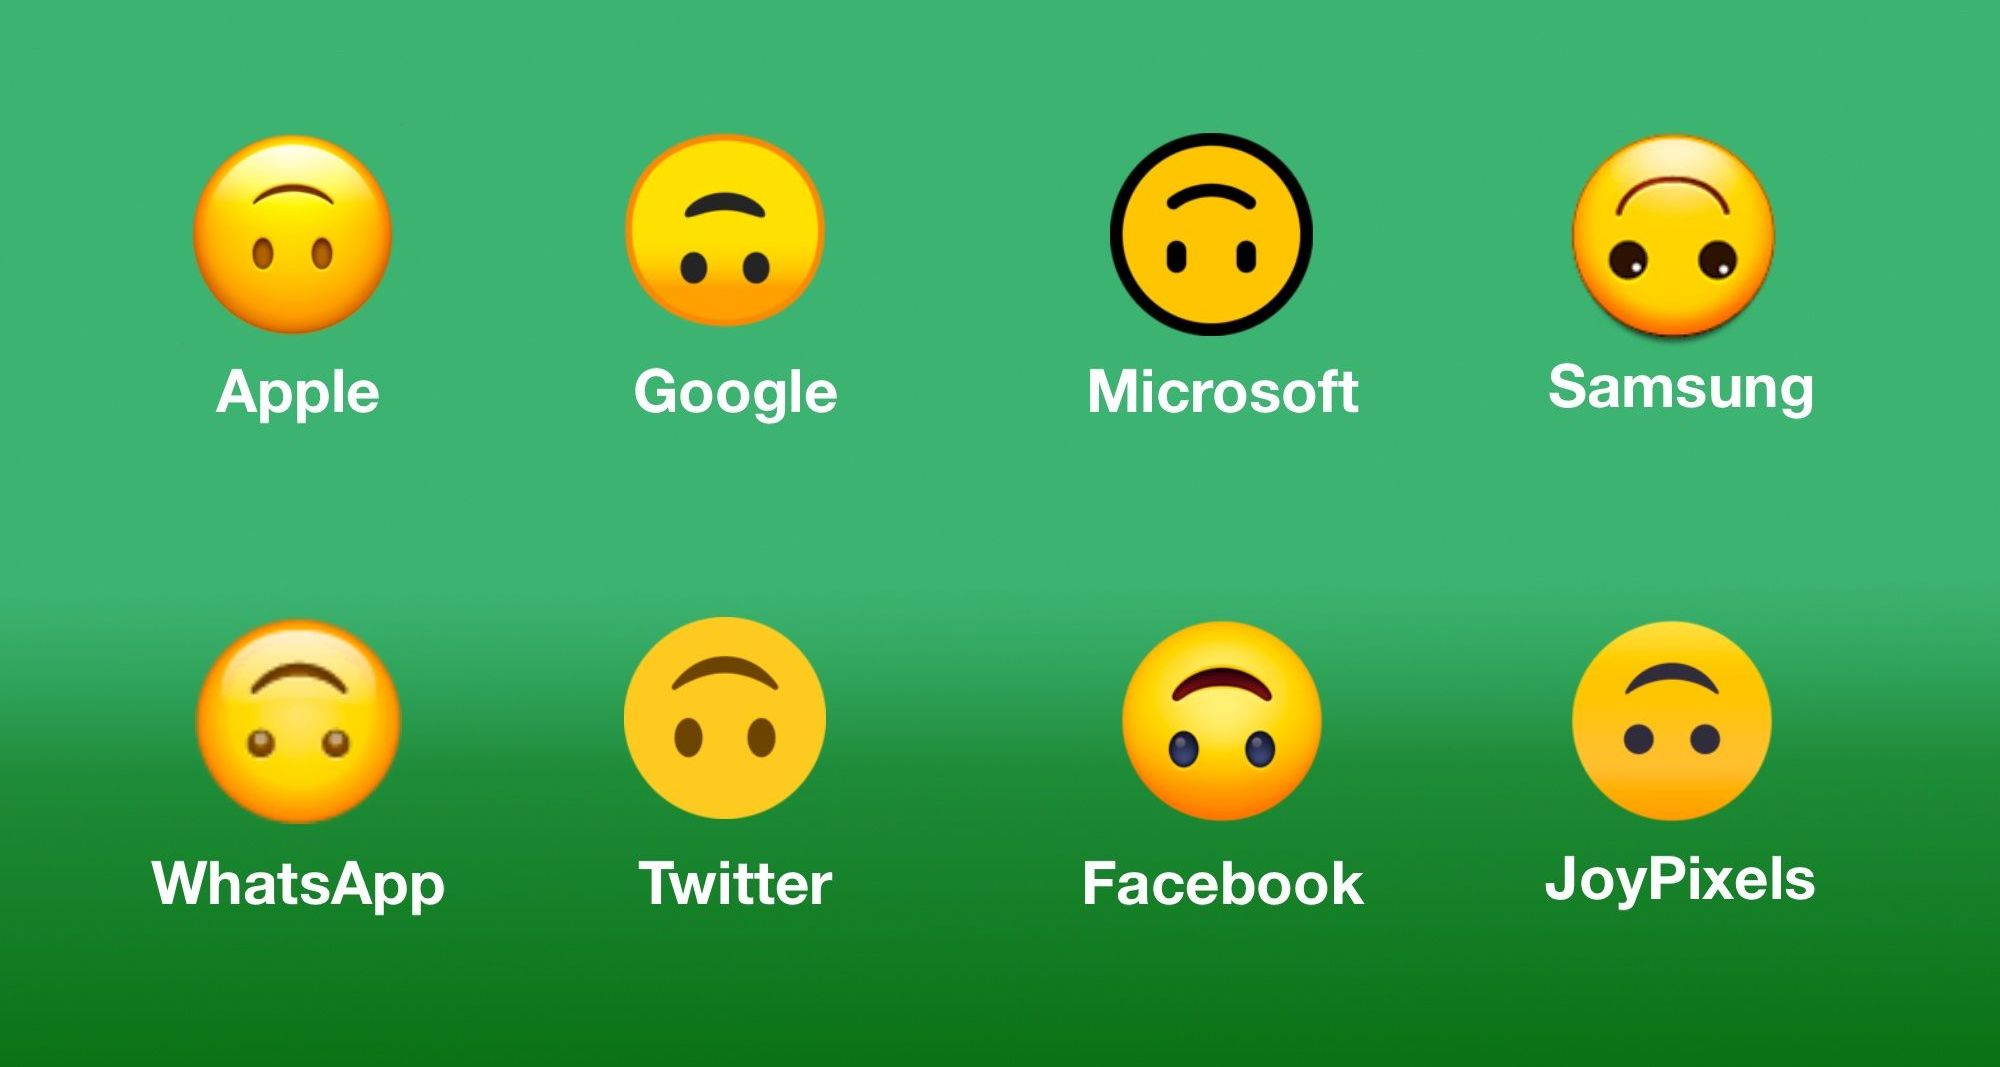 Down mean upside smiley emoji does the what What does